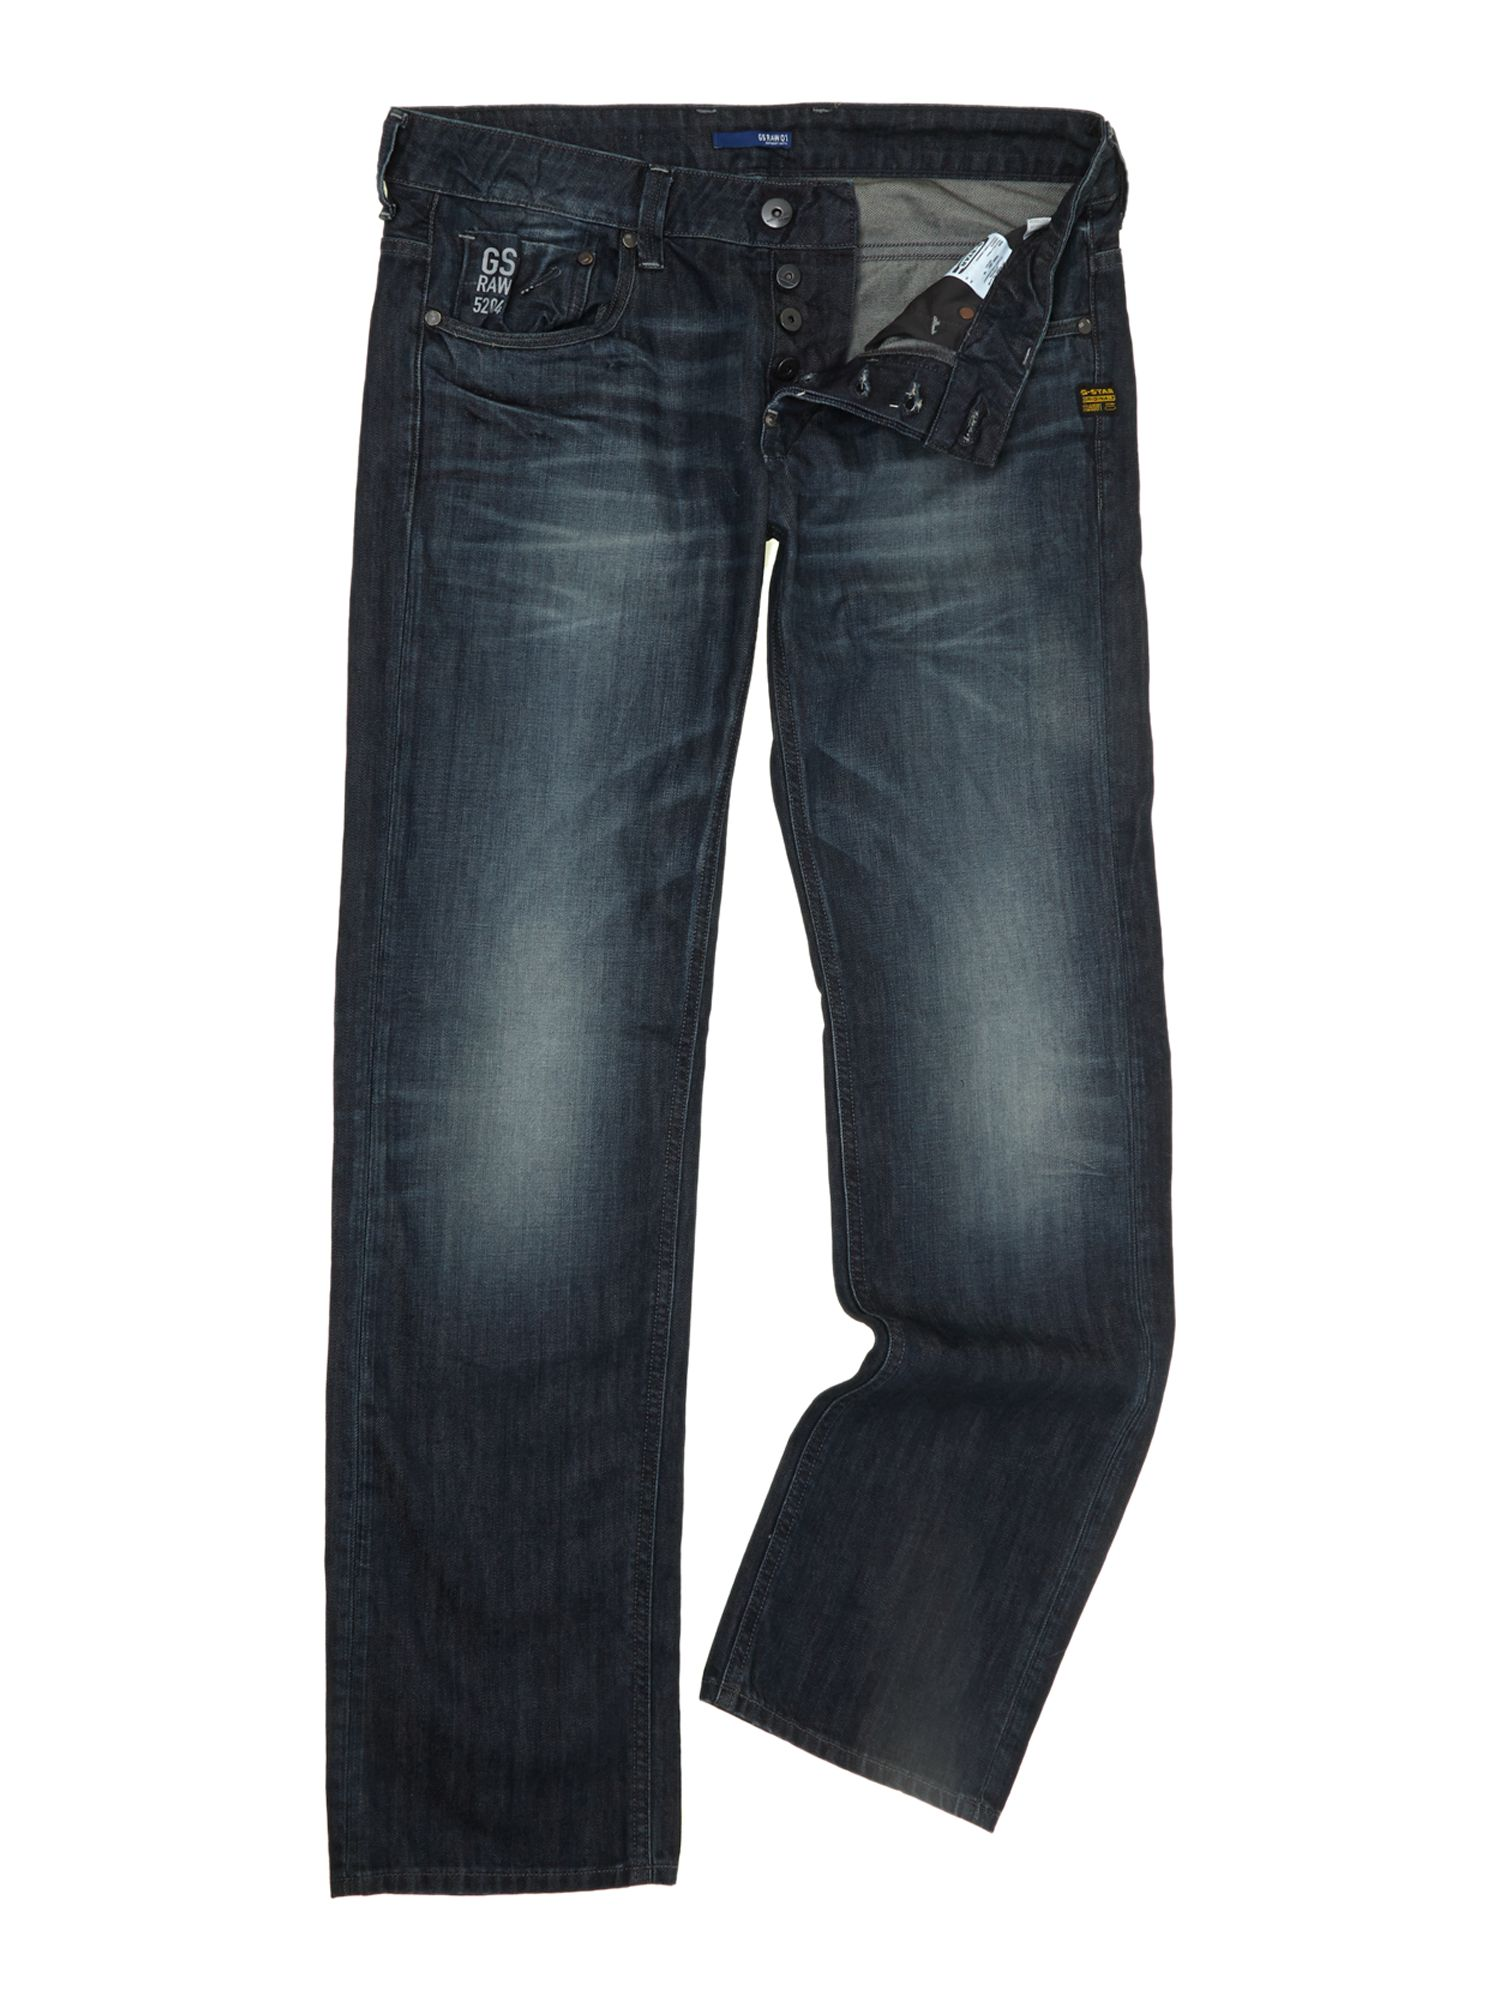 Low rise slim fit jeans